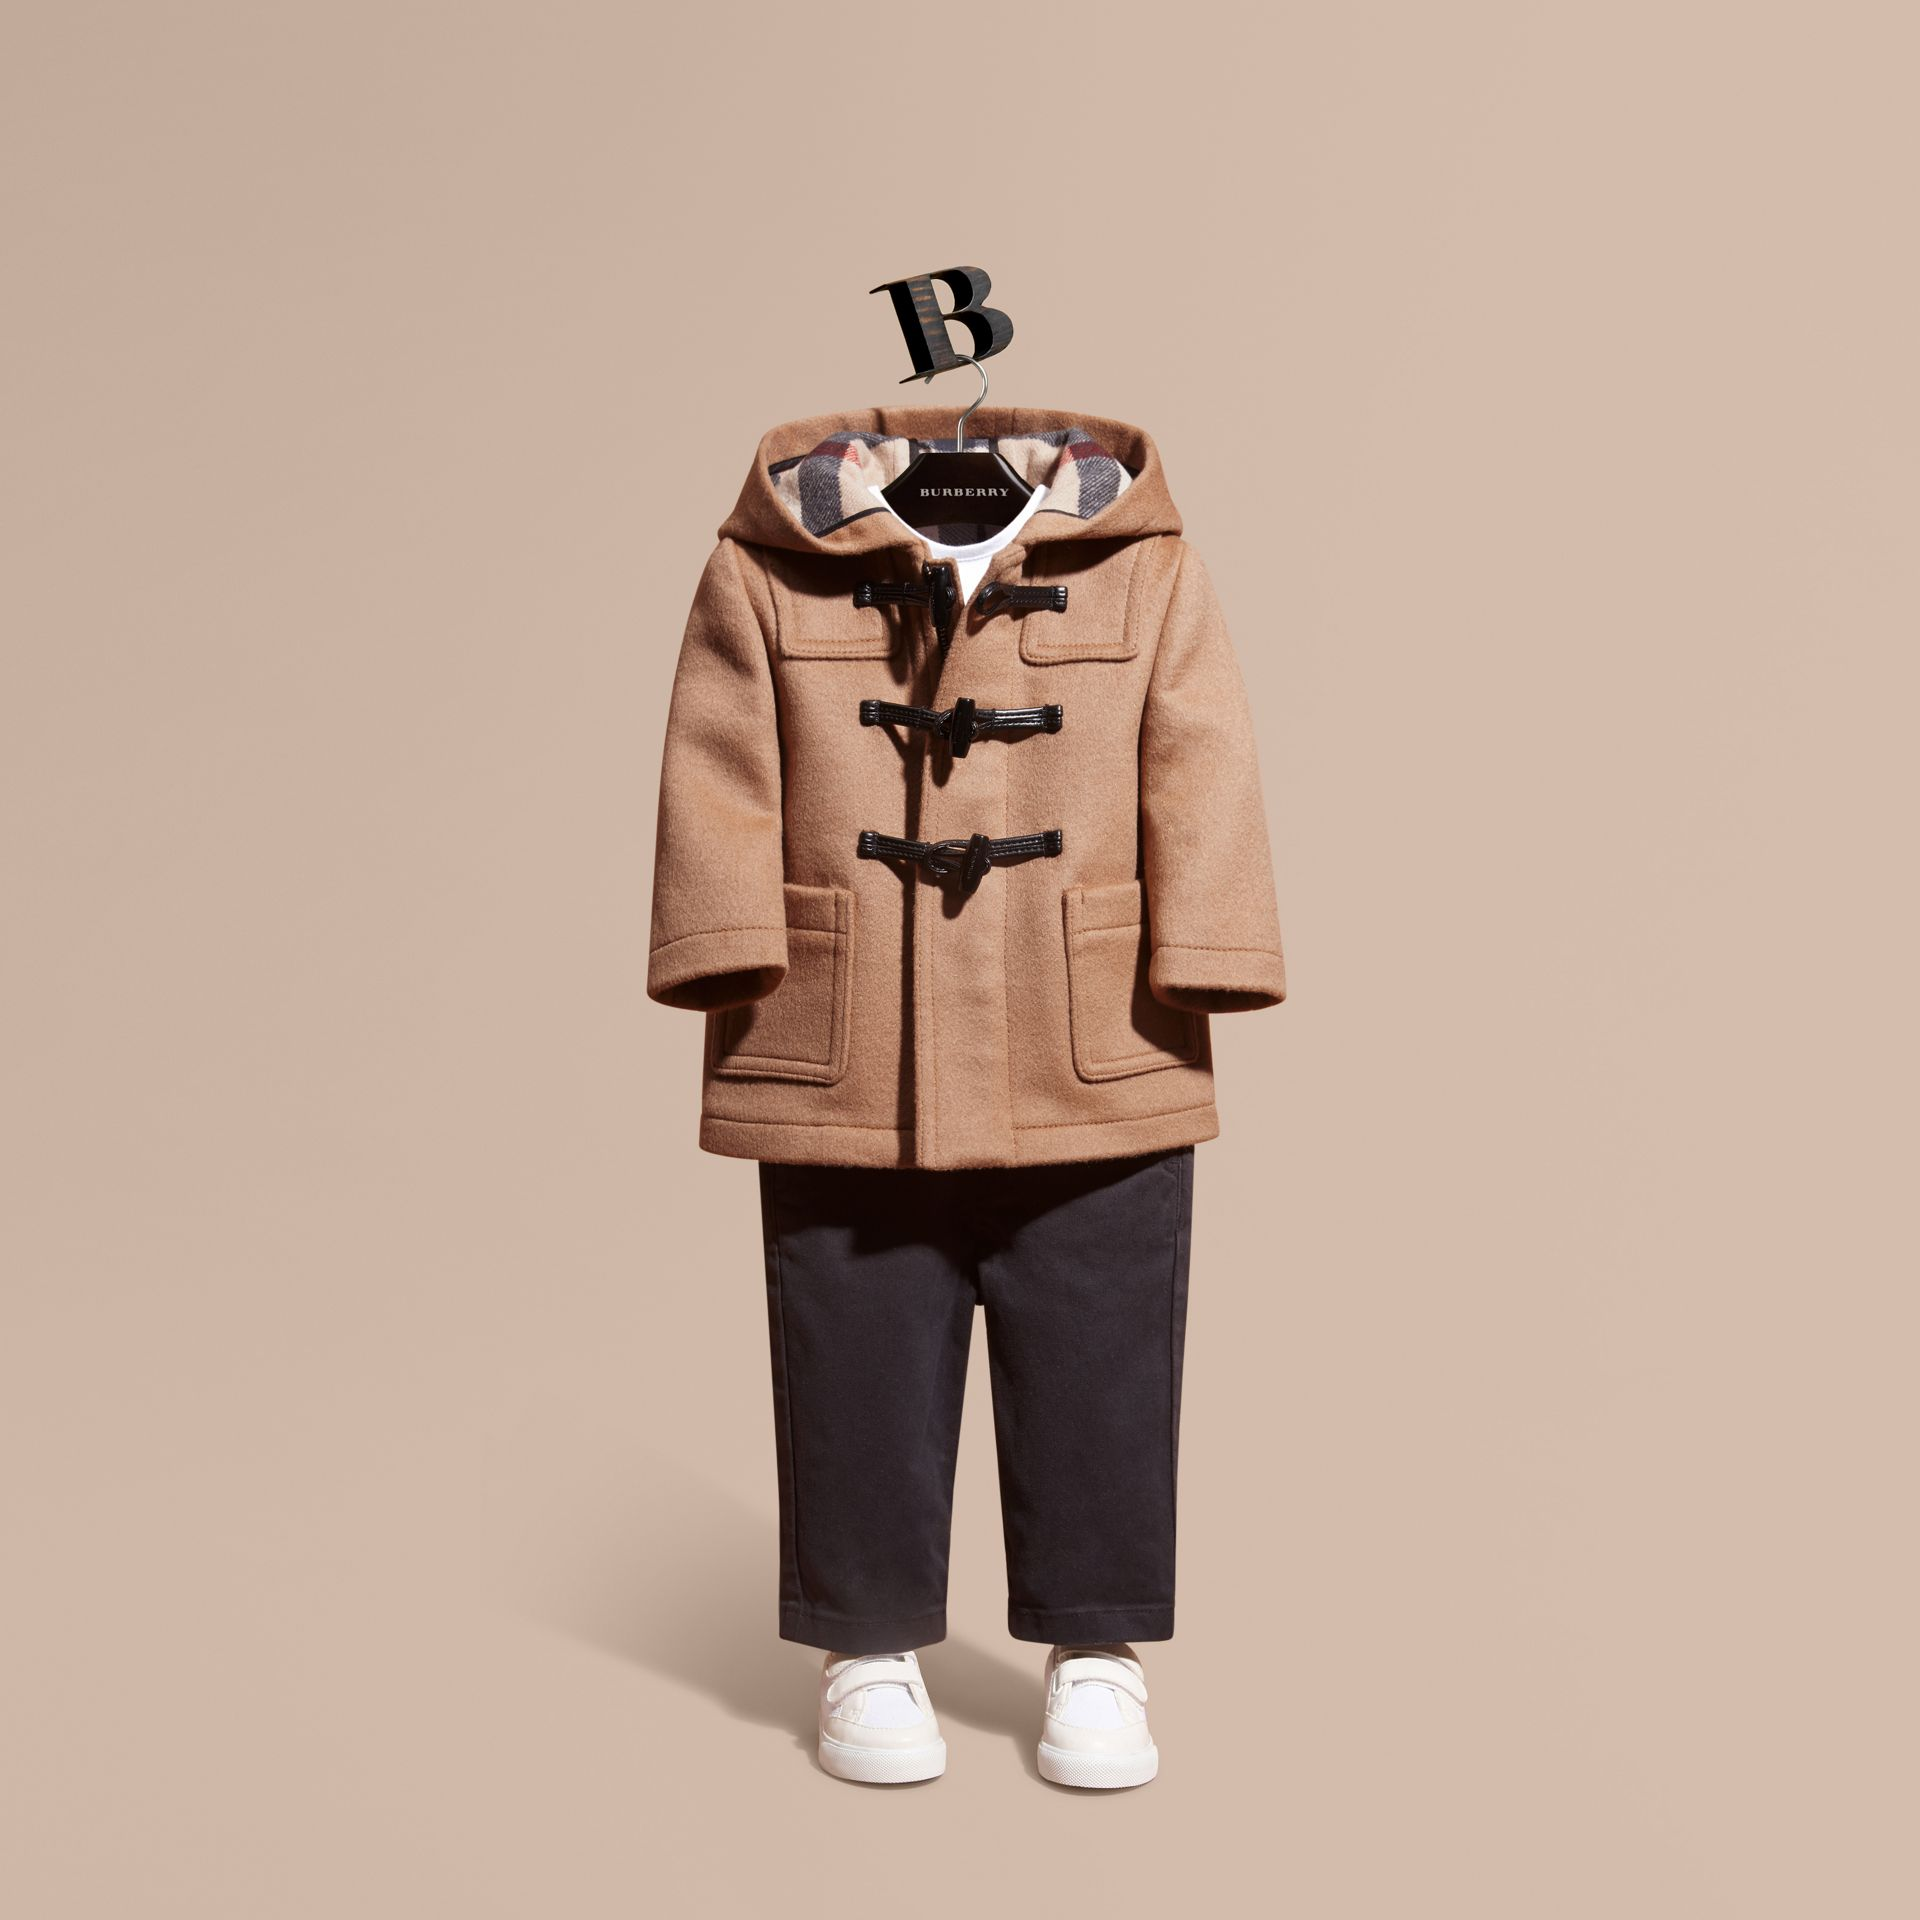 Wool Duffle Coat in New Camel | Burberry - gallery image 1